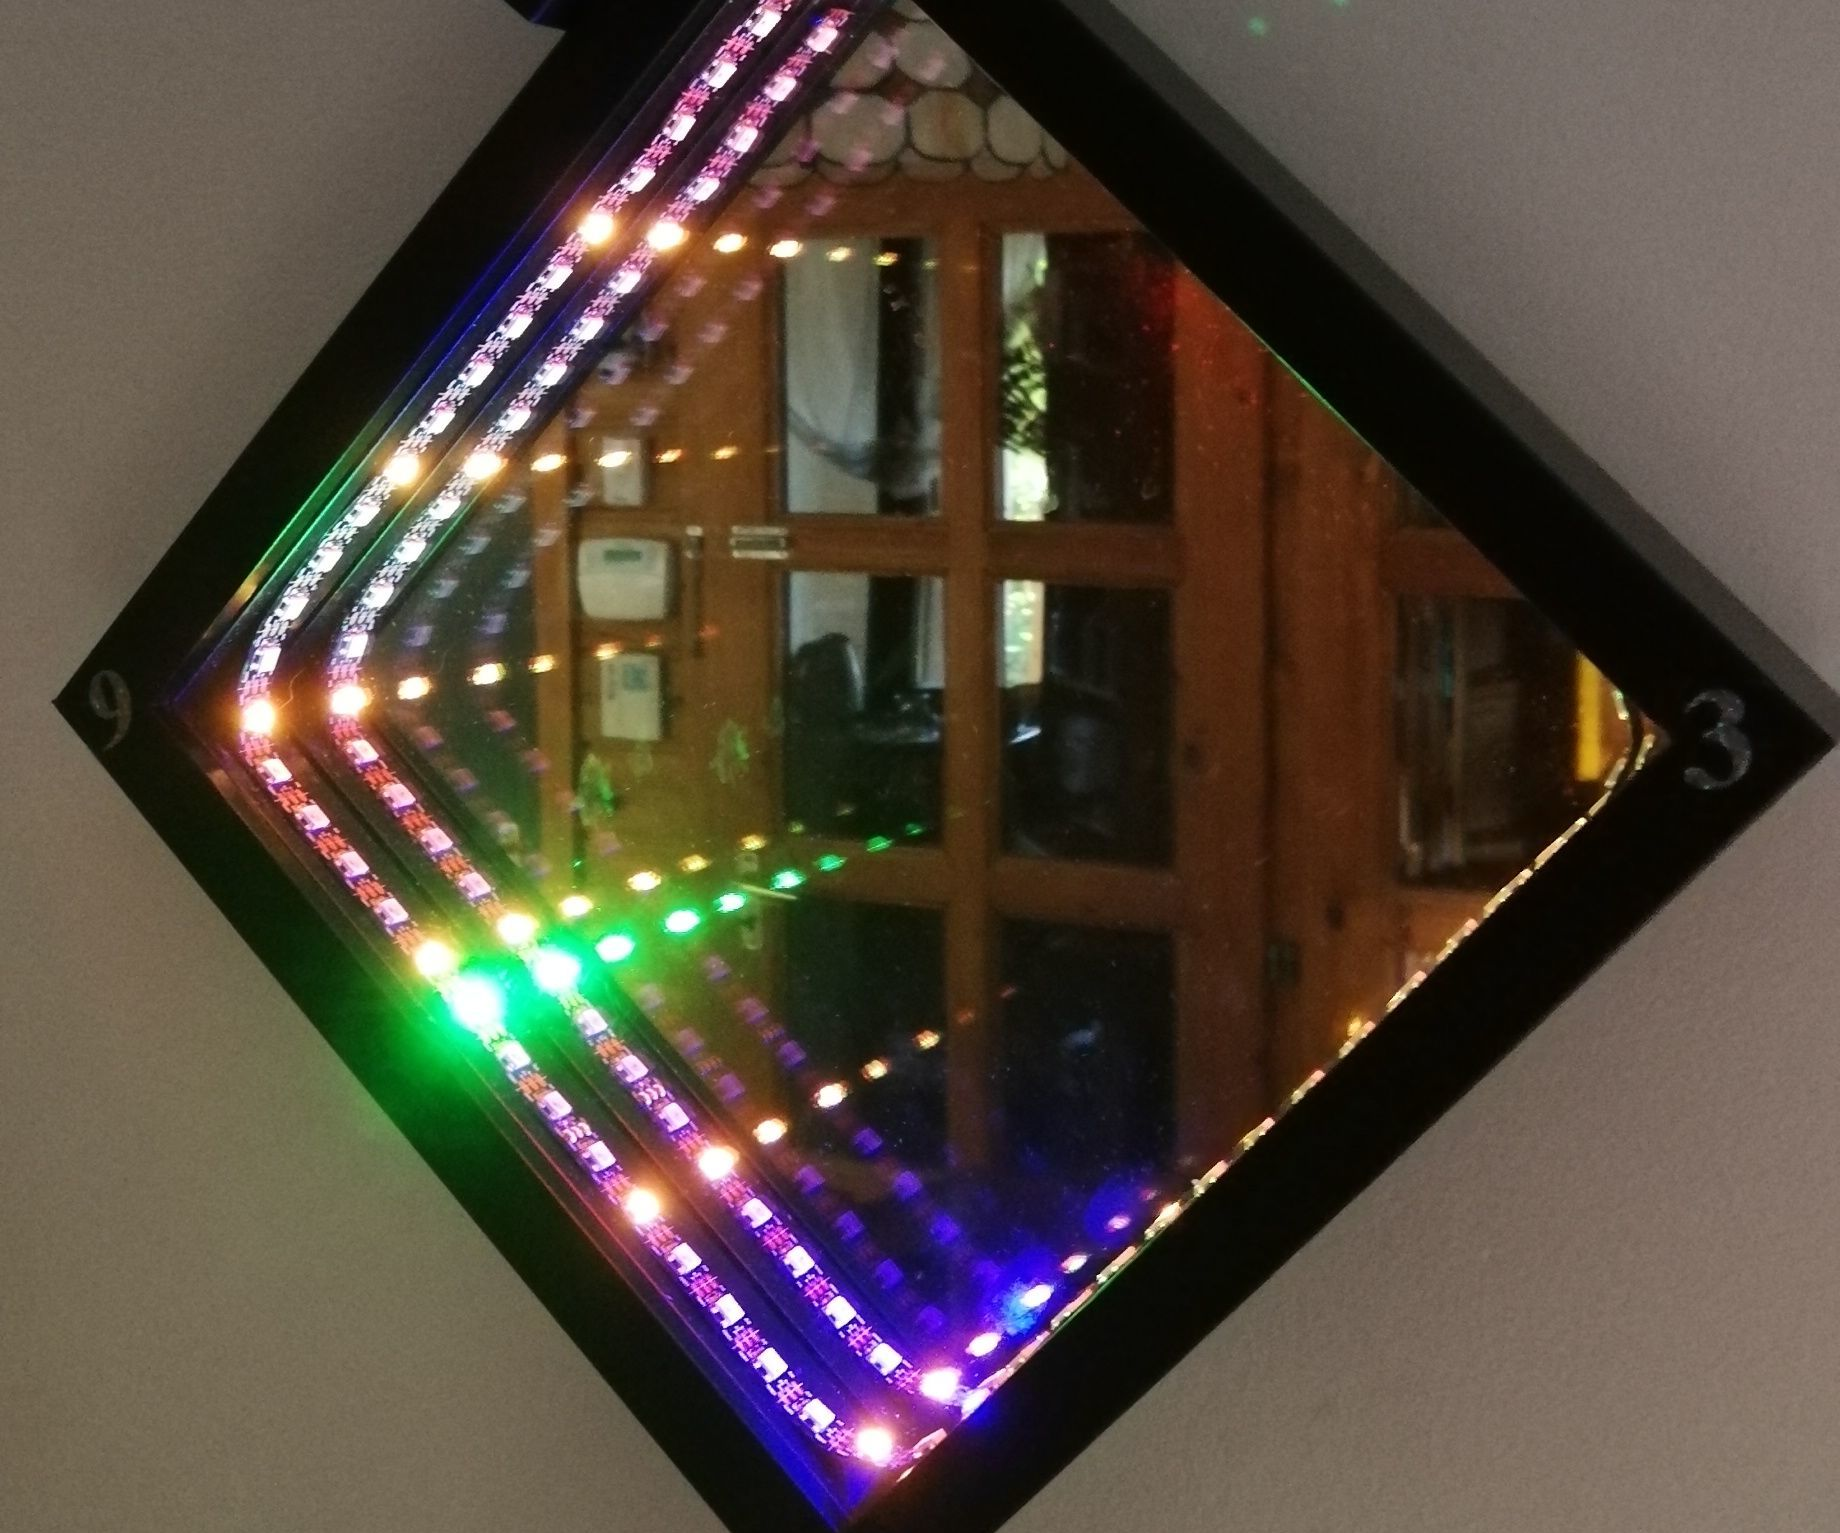 Infinity Mirror Wall Clock in IKEA Picture Frame